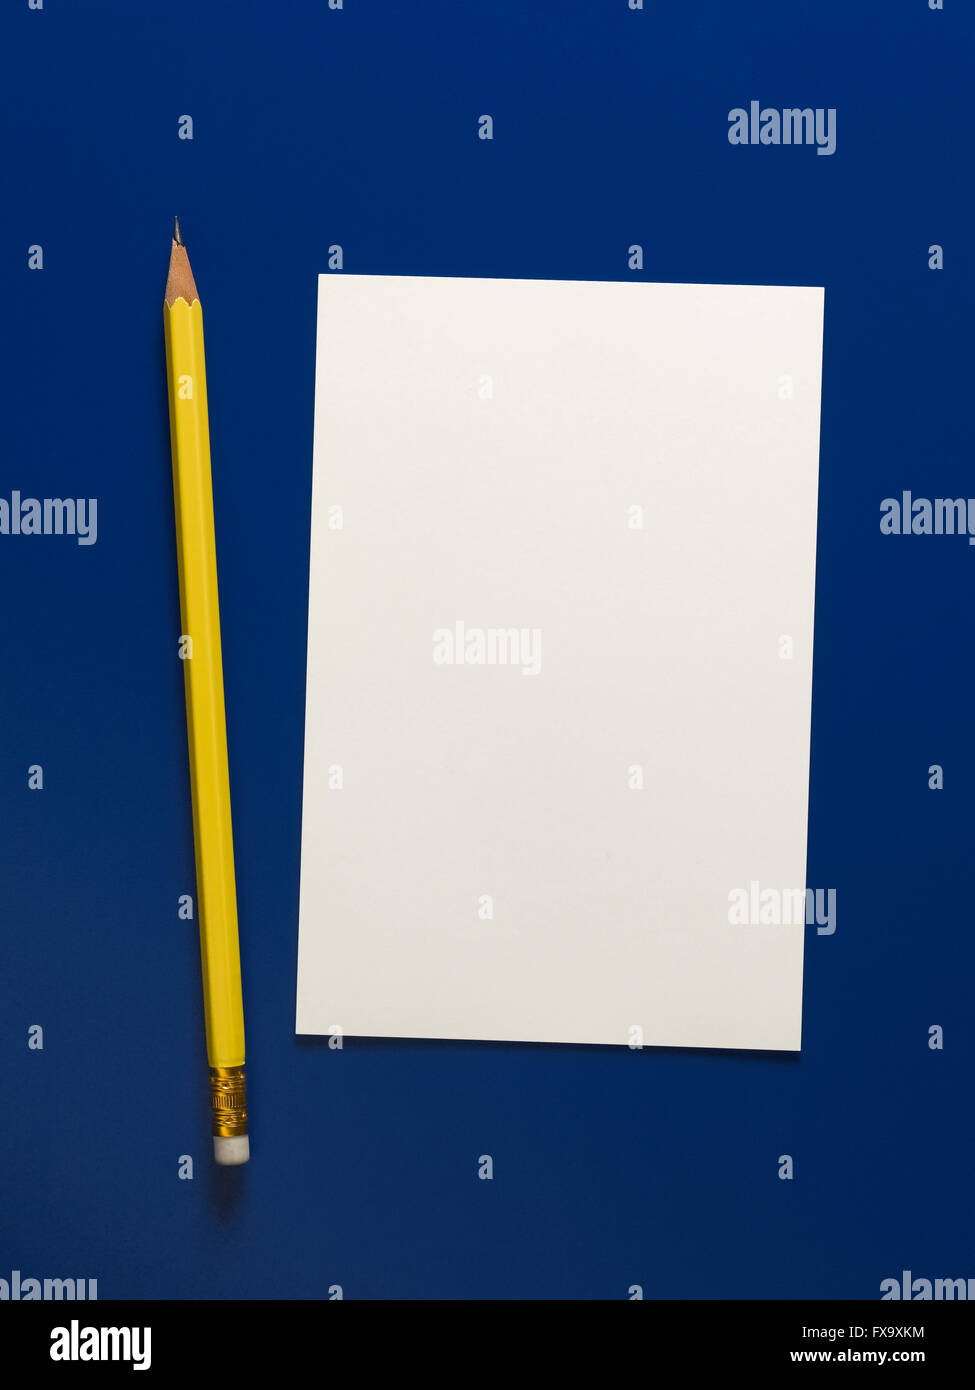 Yellow pencil isolated on a blue background - Stock Image